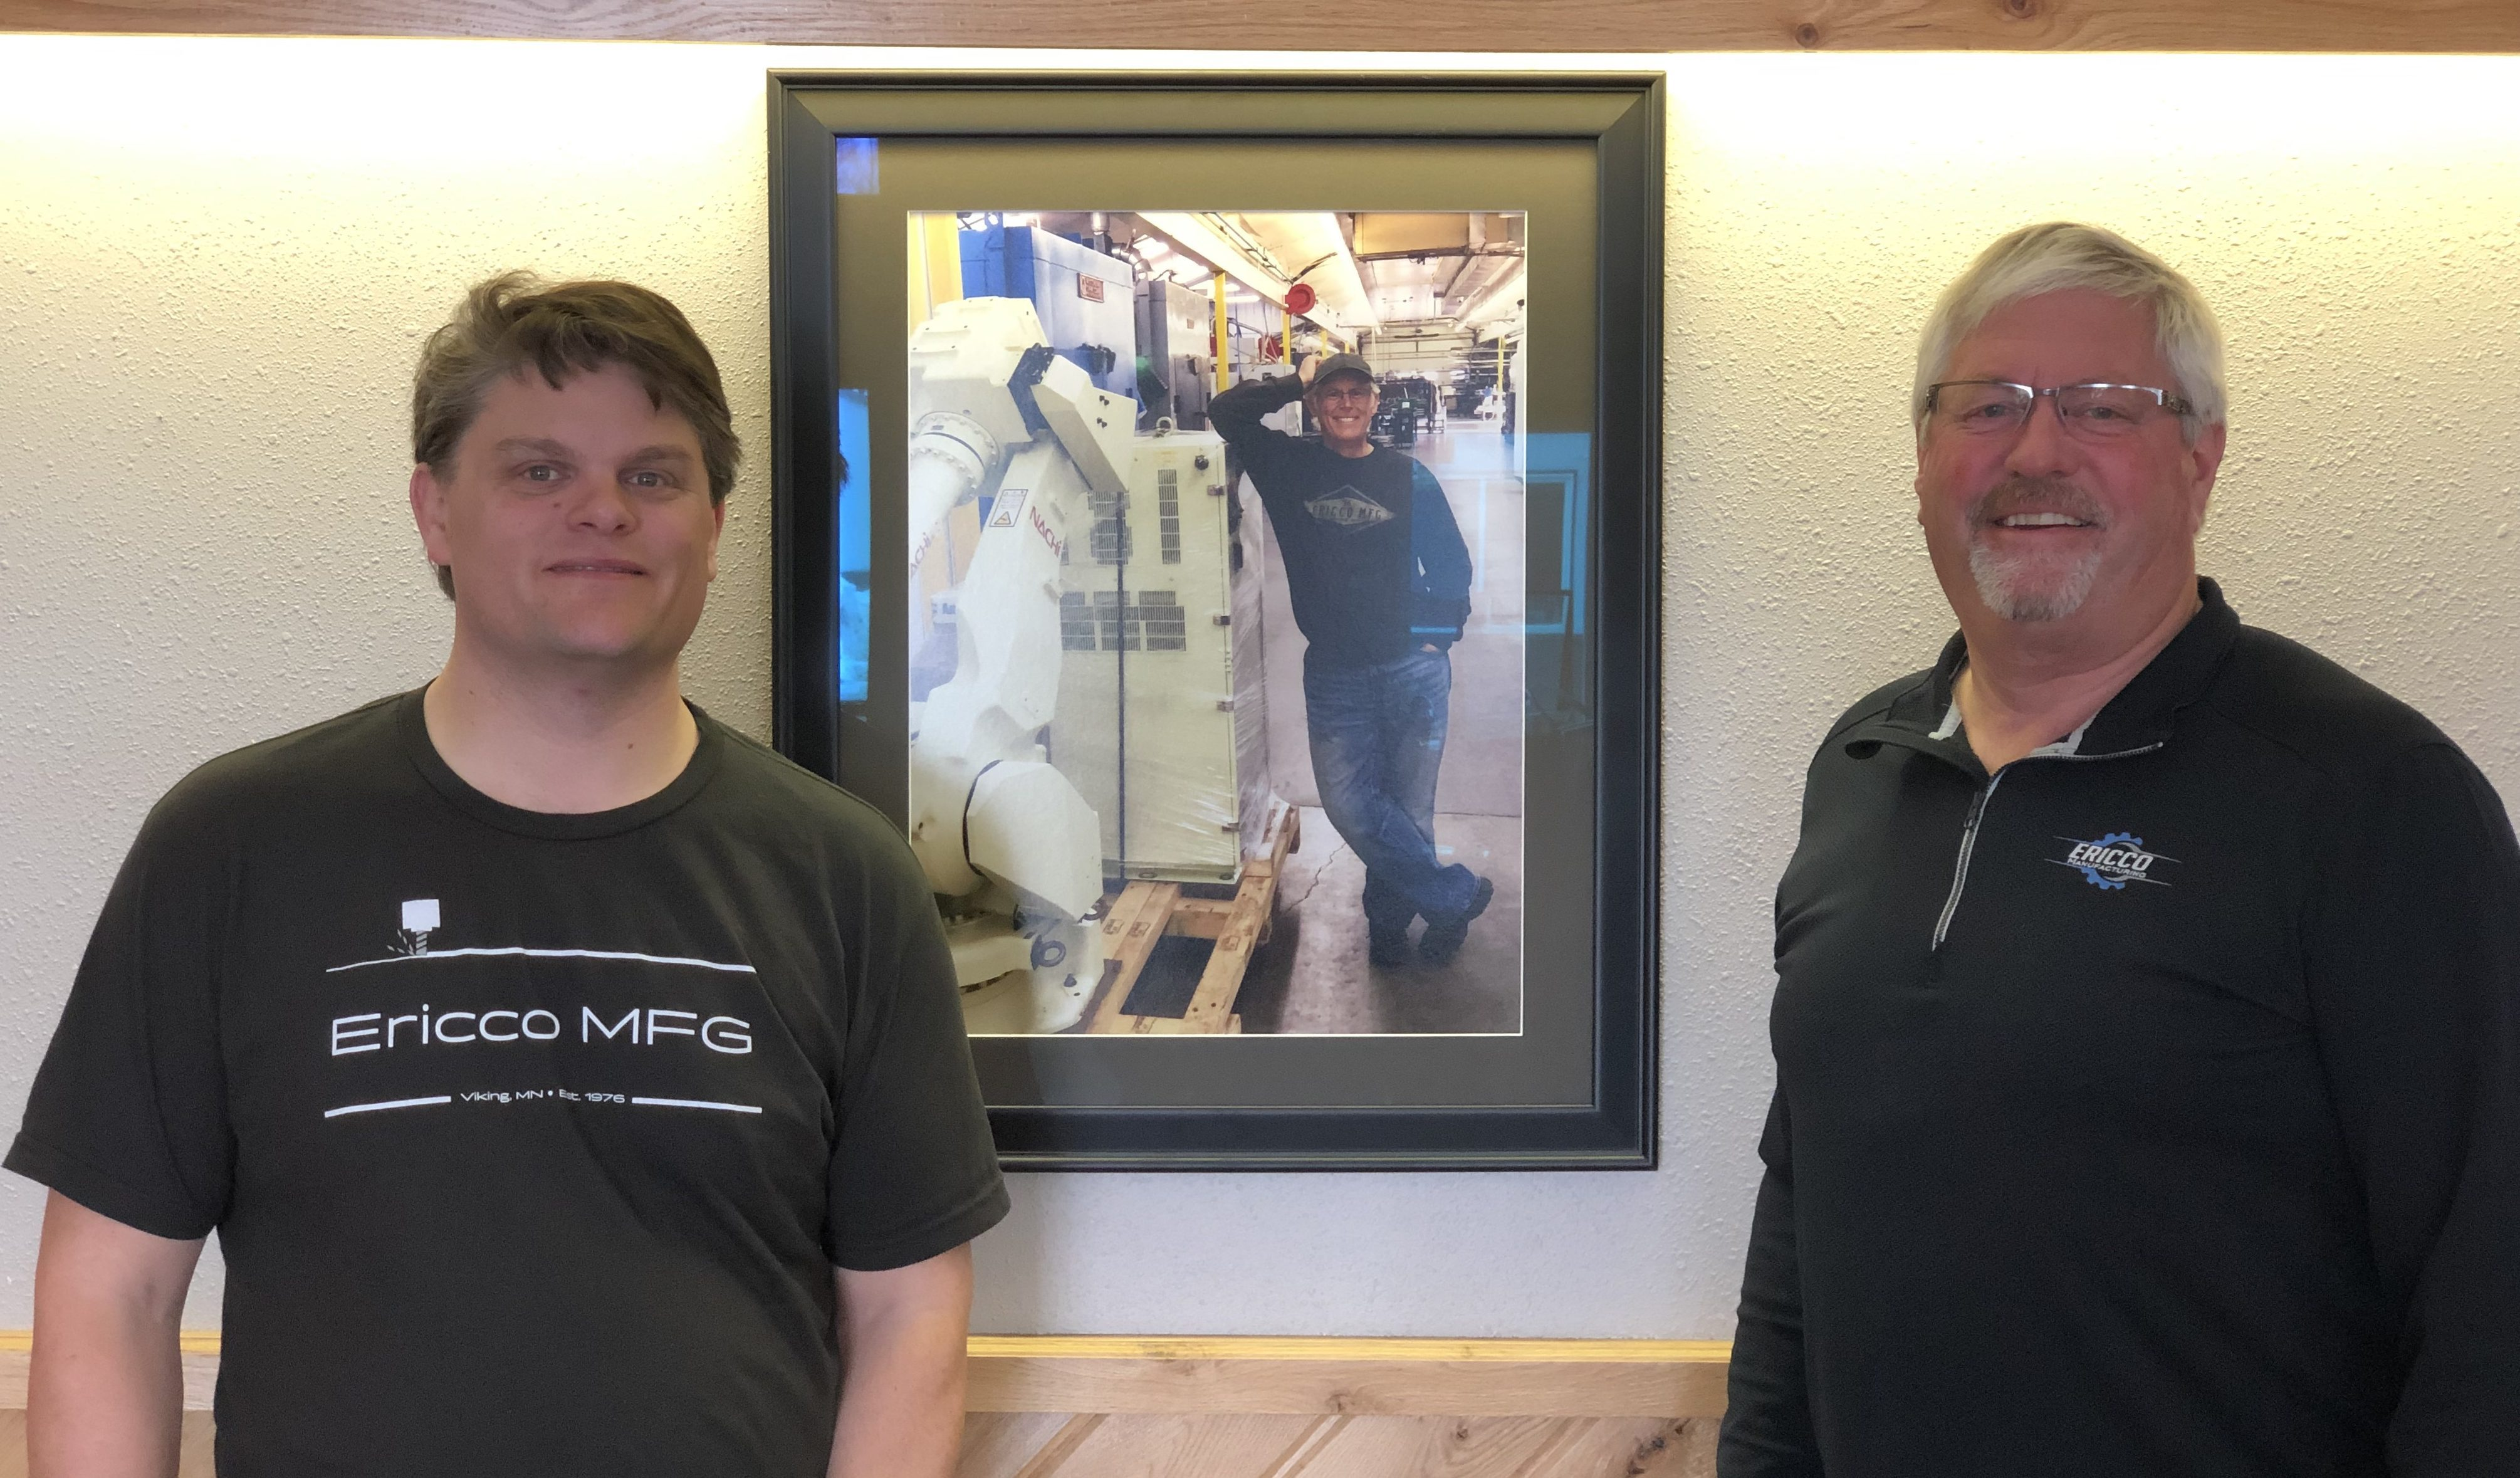 Ben Erickson, owner, and Mike Sorteberg, General Manager of Ericco Manufacturing